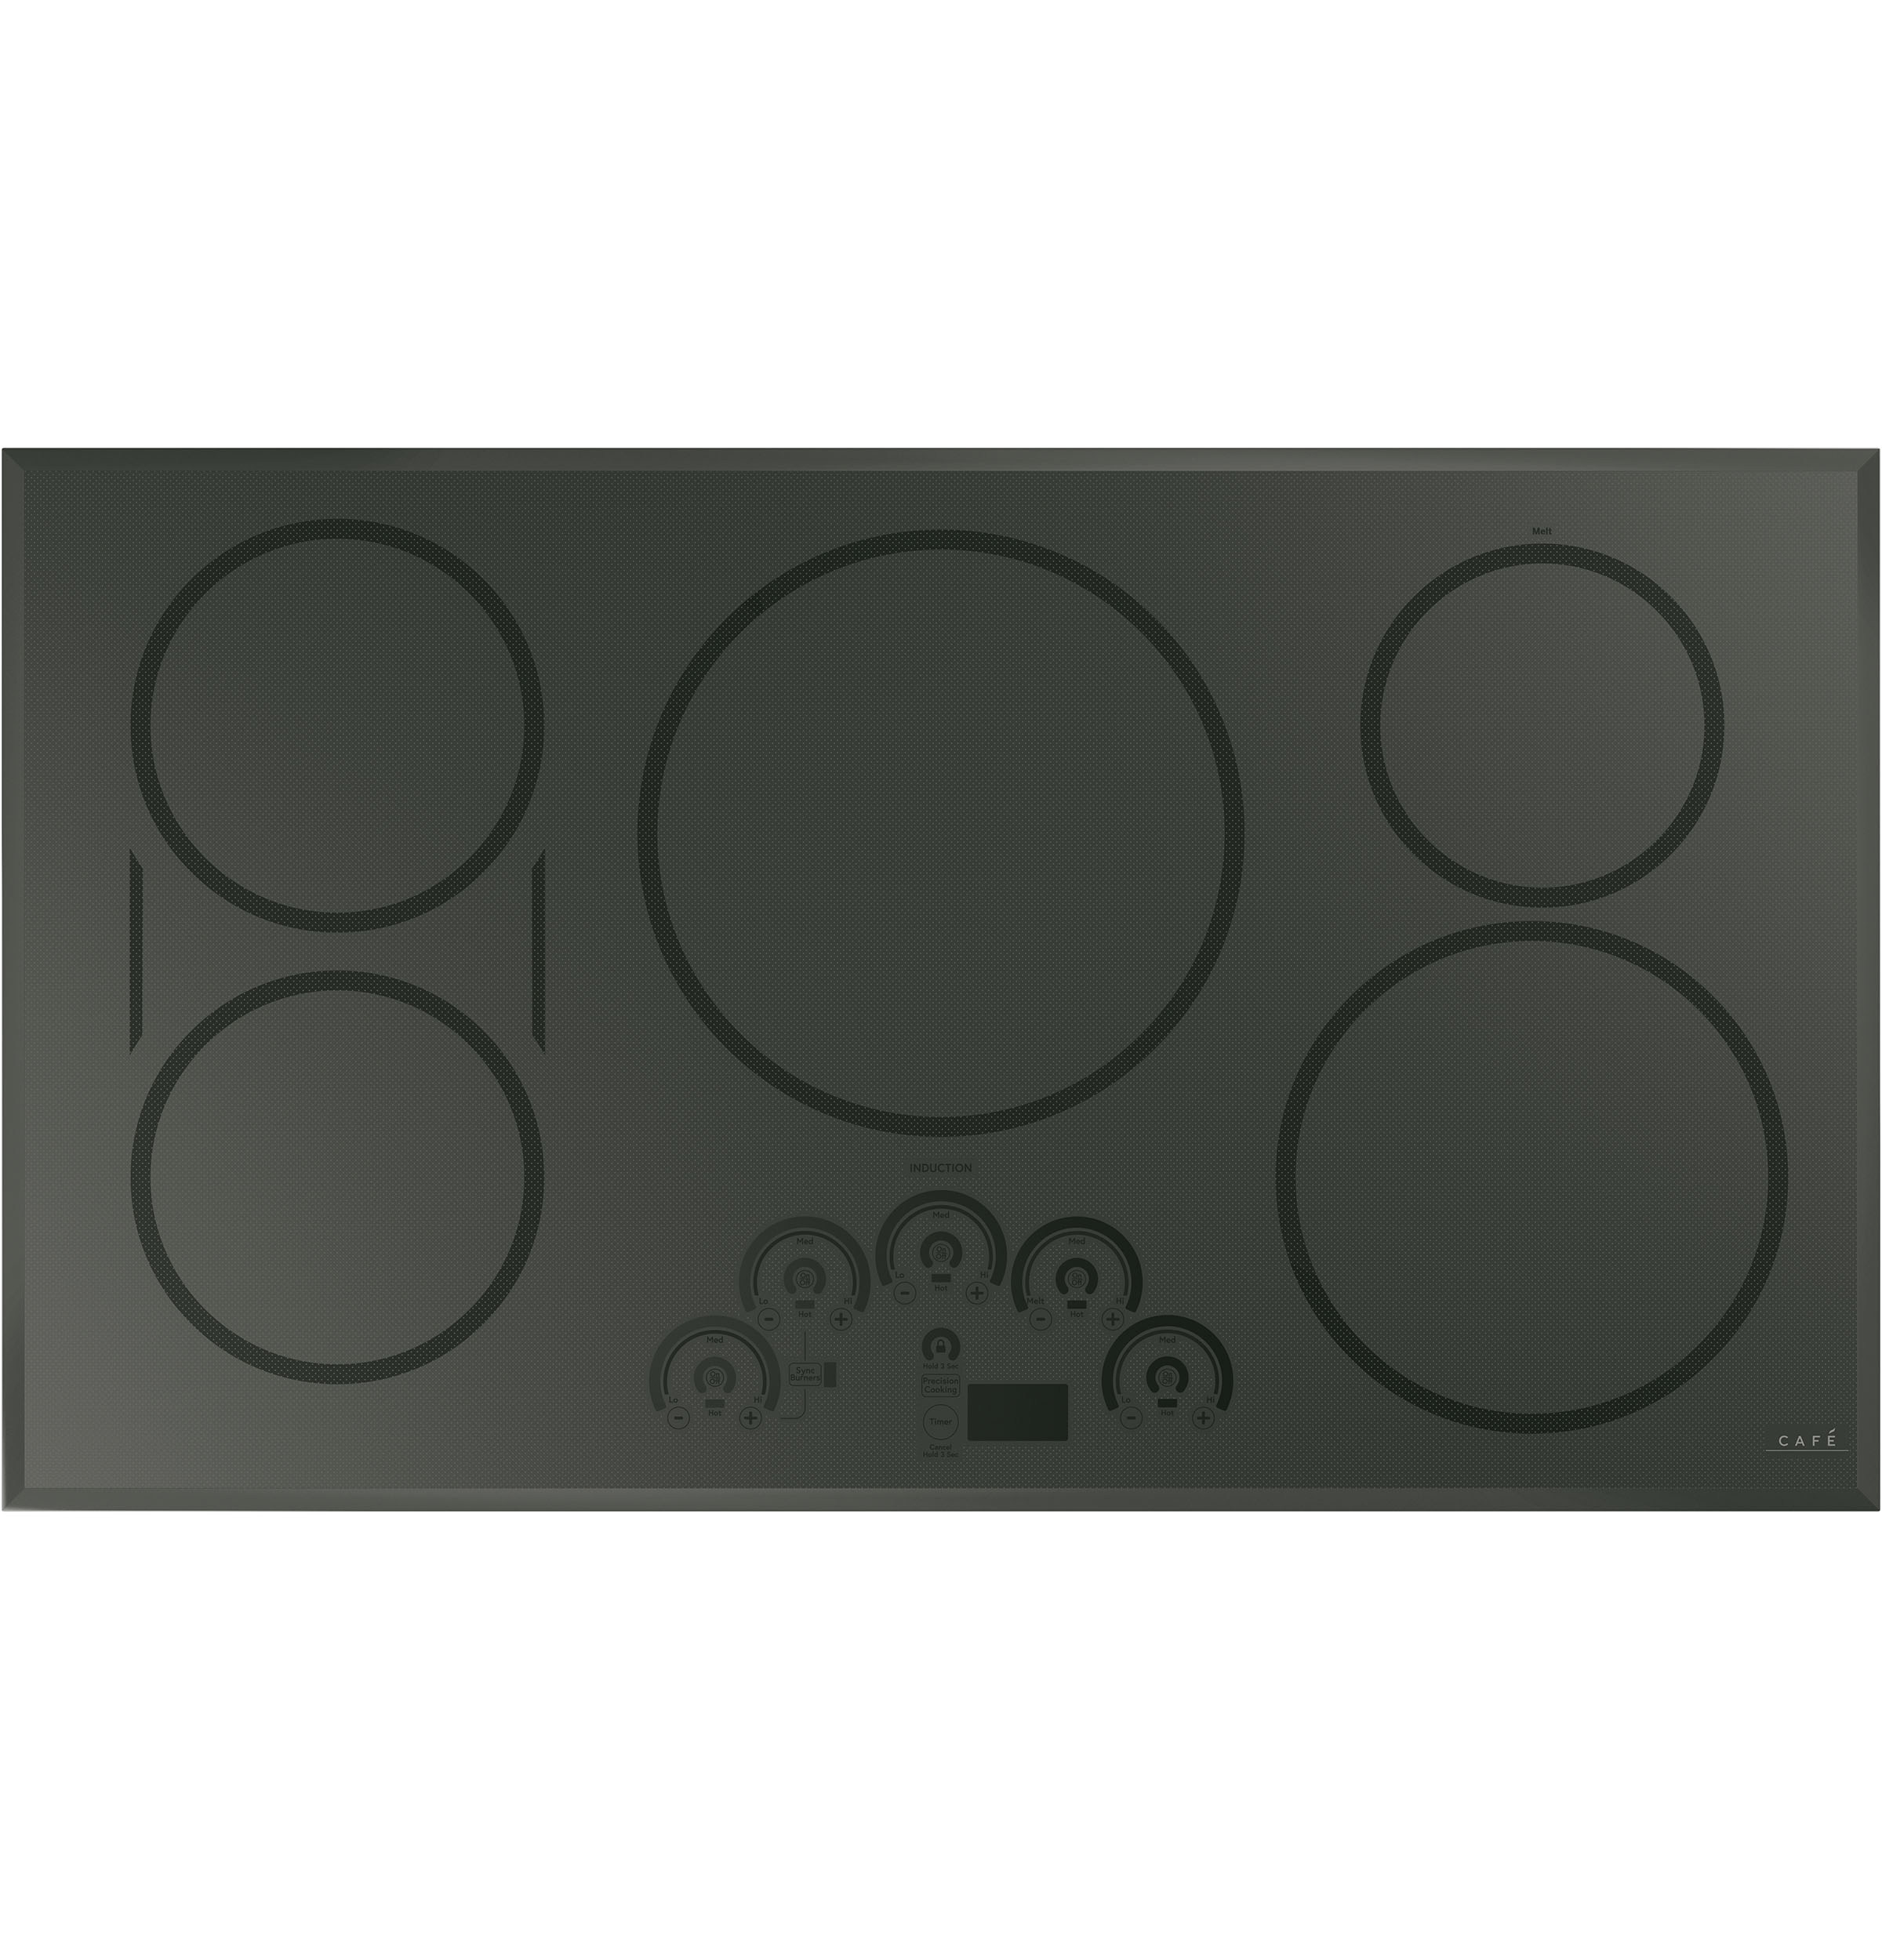 "Cafe Café™ 36"" Smart Touch-Control Induction Cooktop"